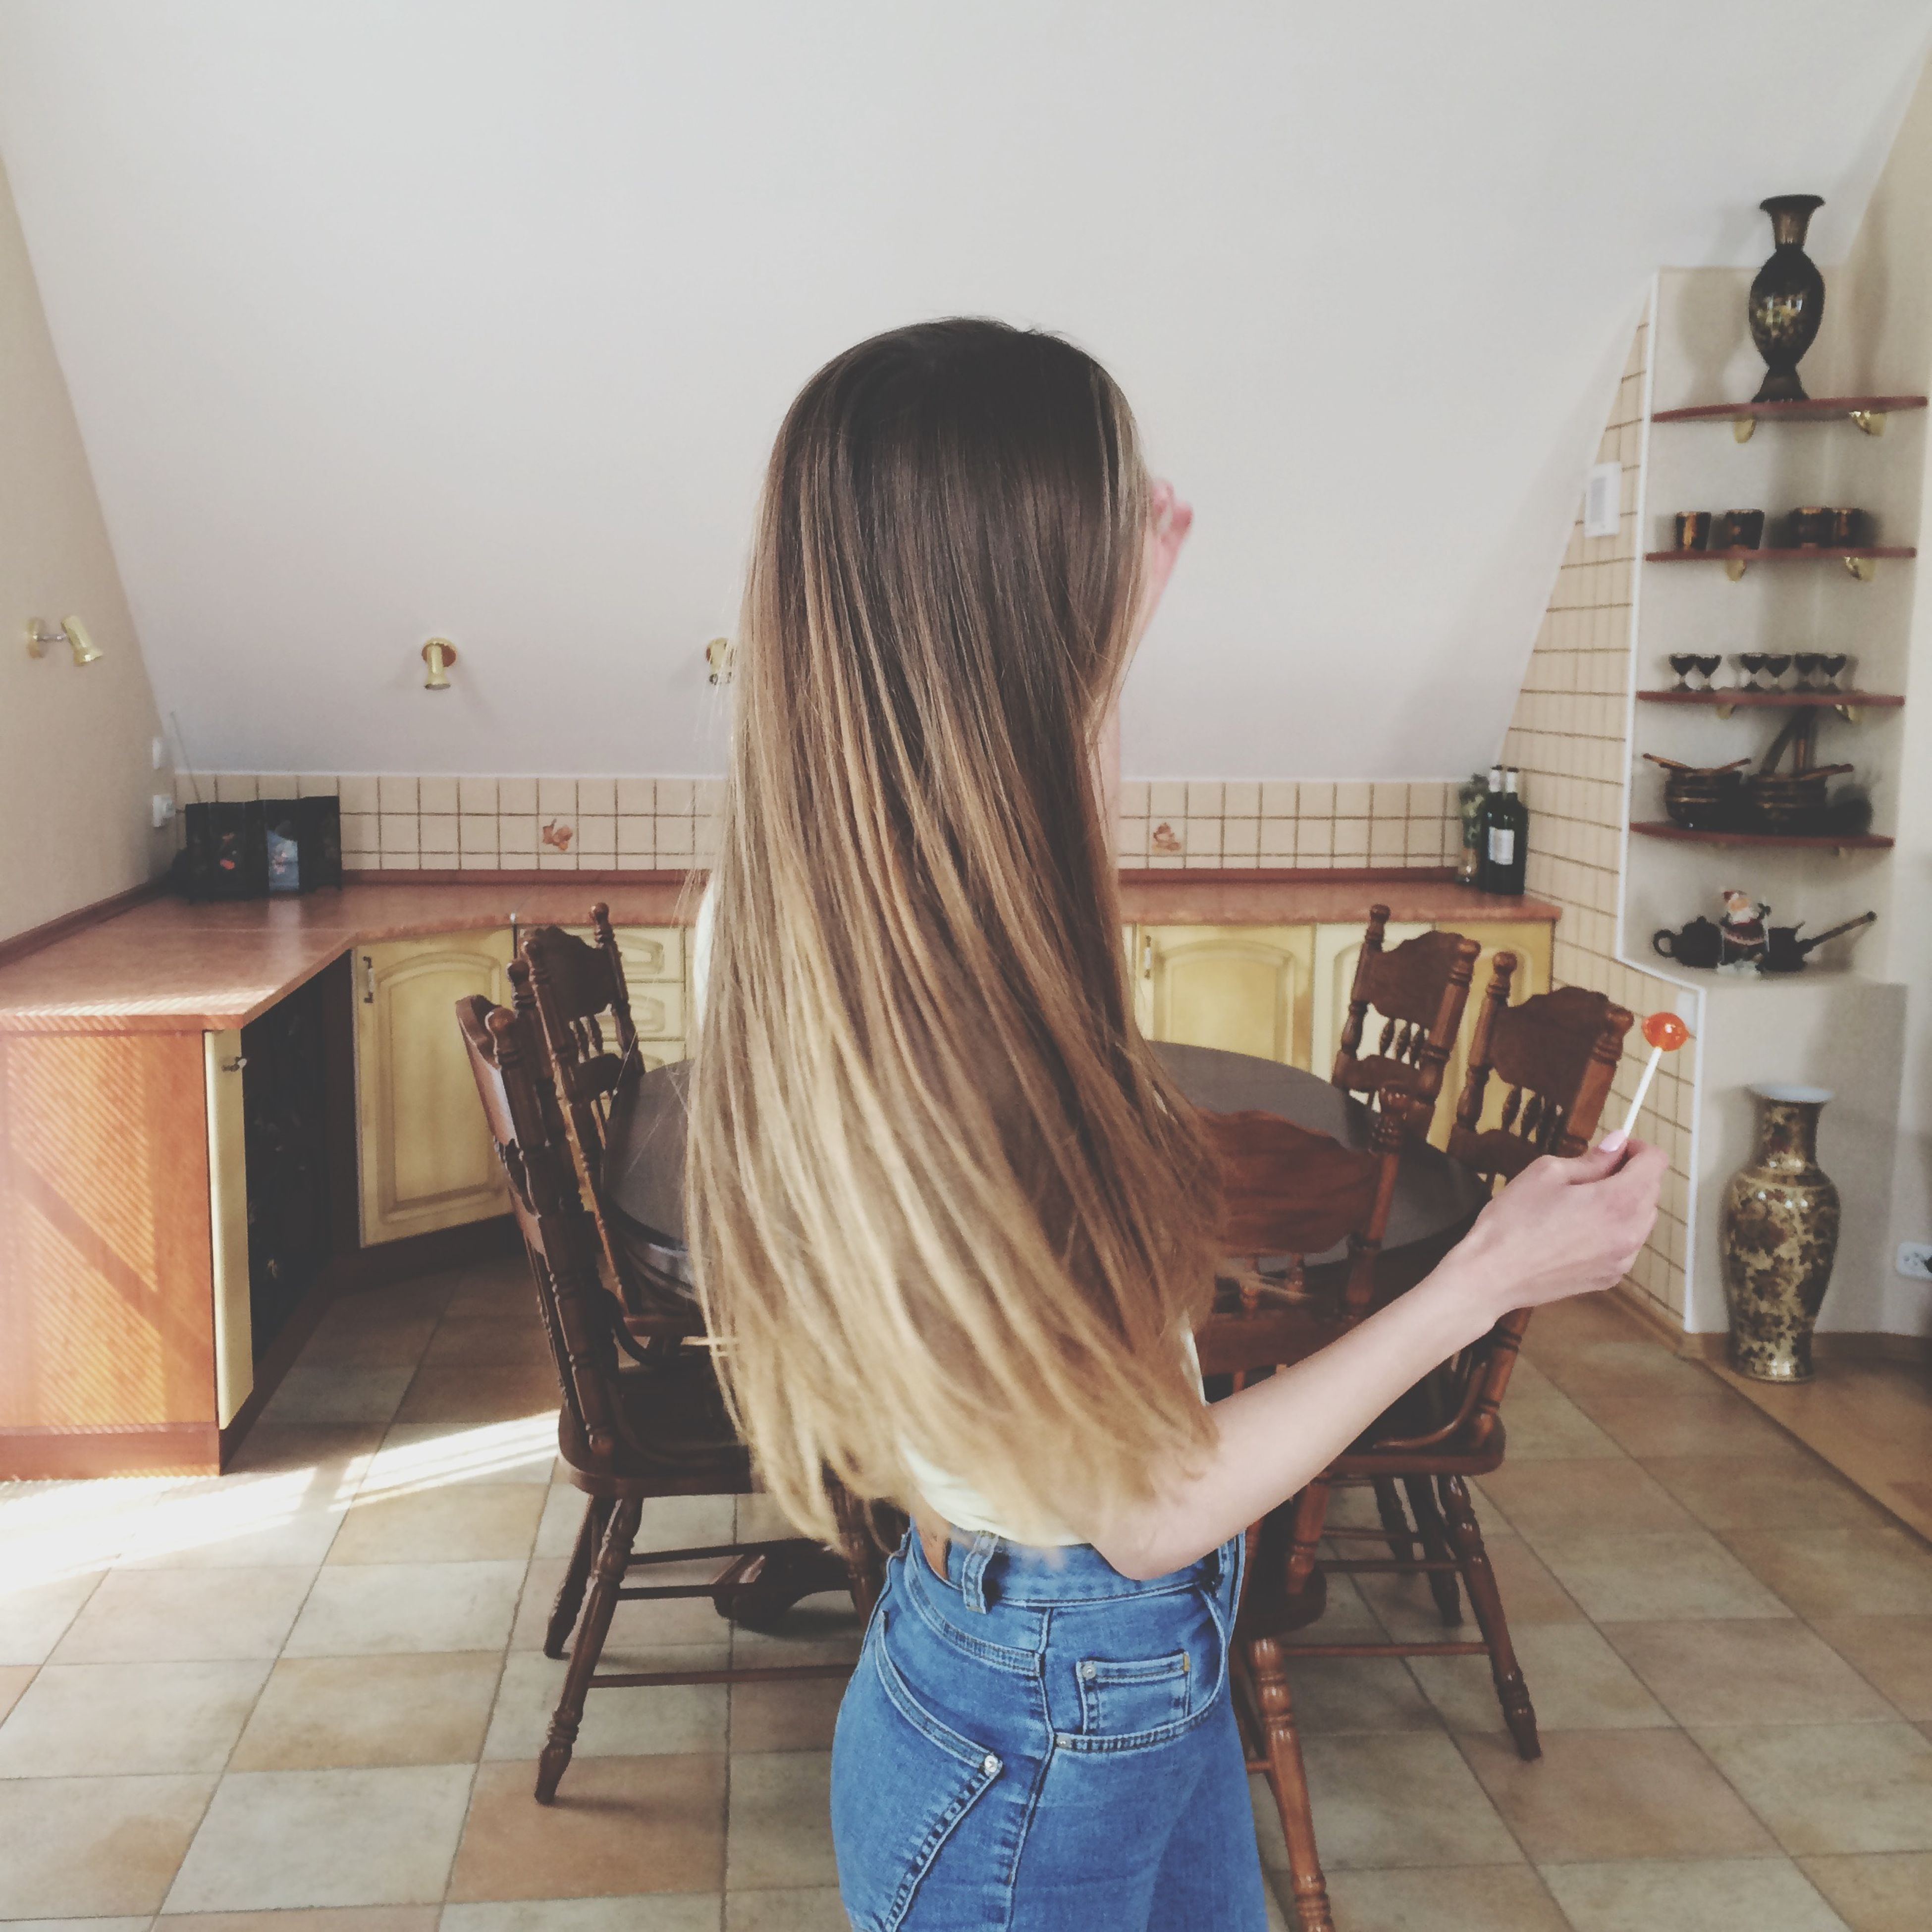 lifestyles, indoors, leisure activity, long hair, casual clothing, young women, rear view, young adult, person, standing, architecture, full length, built structure, sitting, three quarter length, waist up, home interior, men